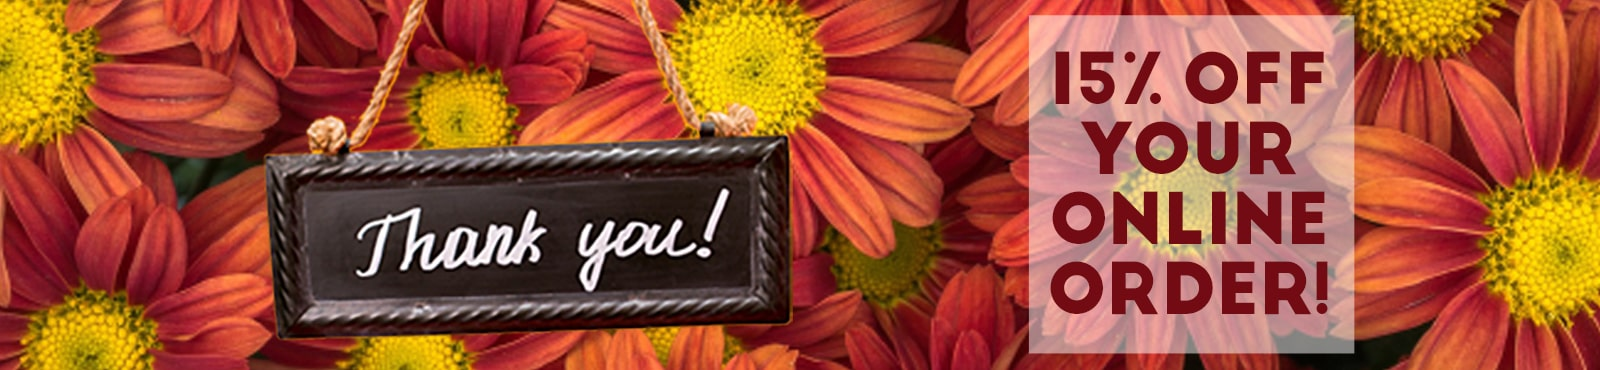 Thank you for being a customer, please accept this 15% off code: 15off. text on image of pink daisies